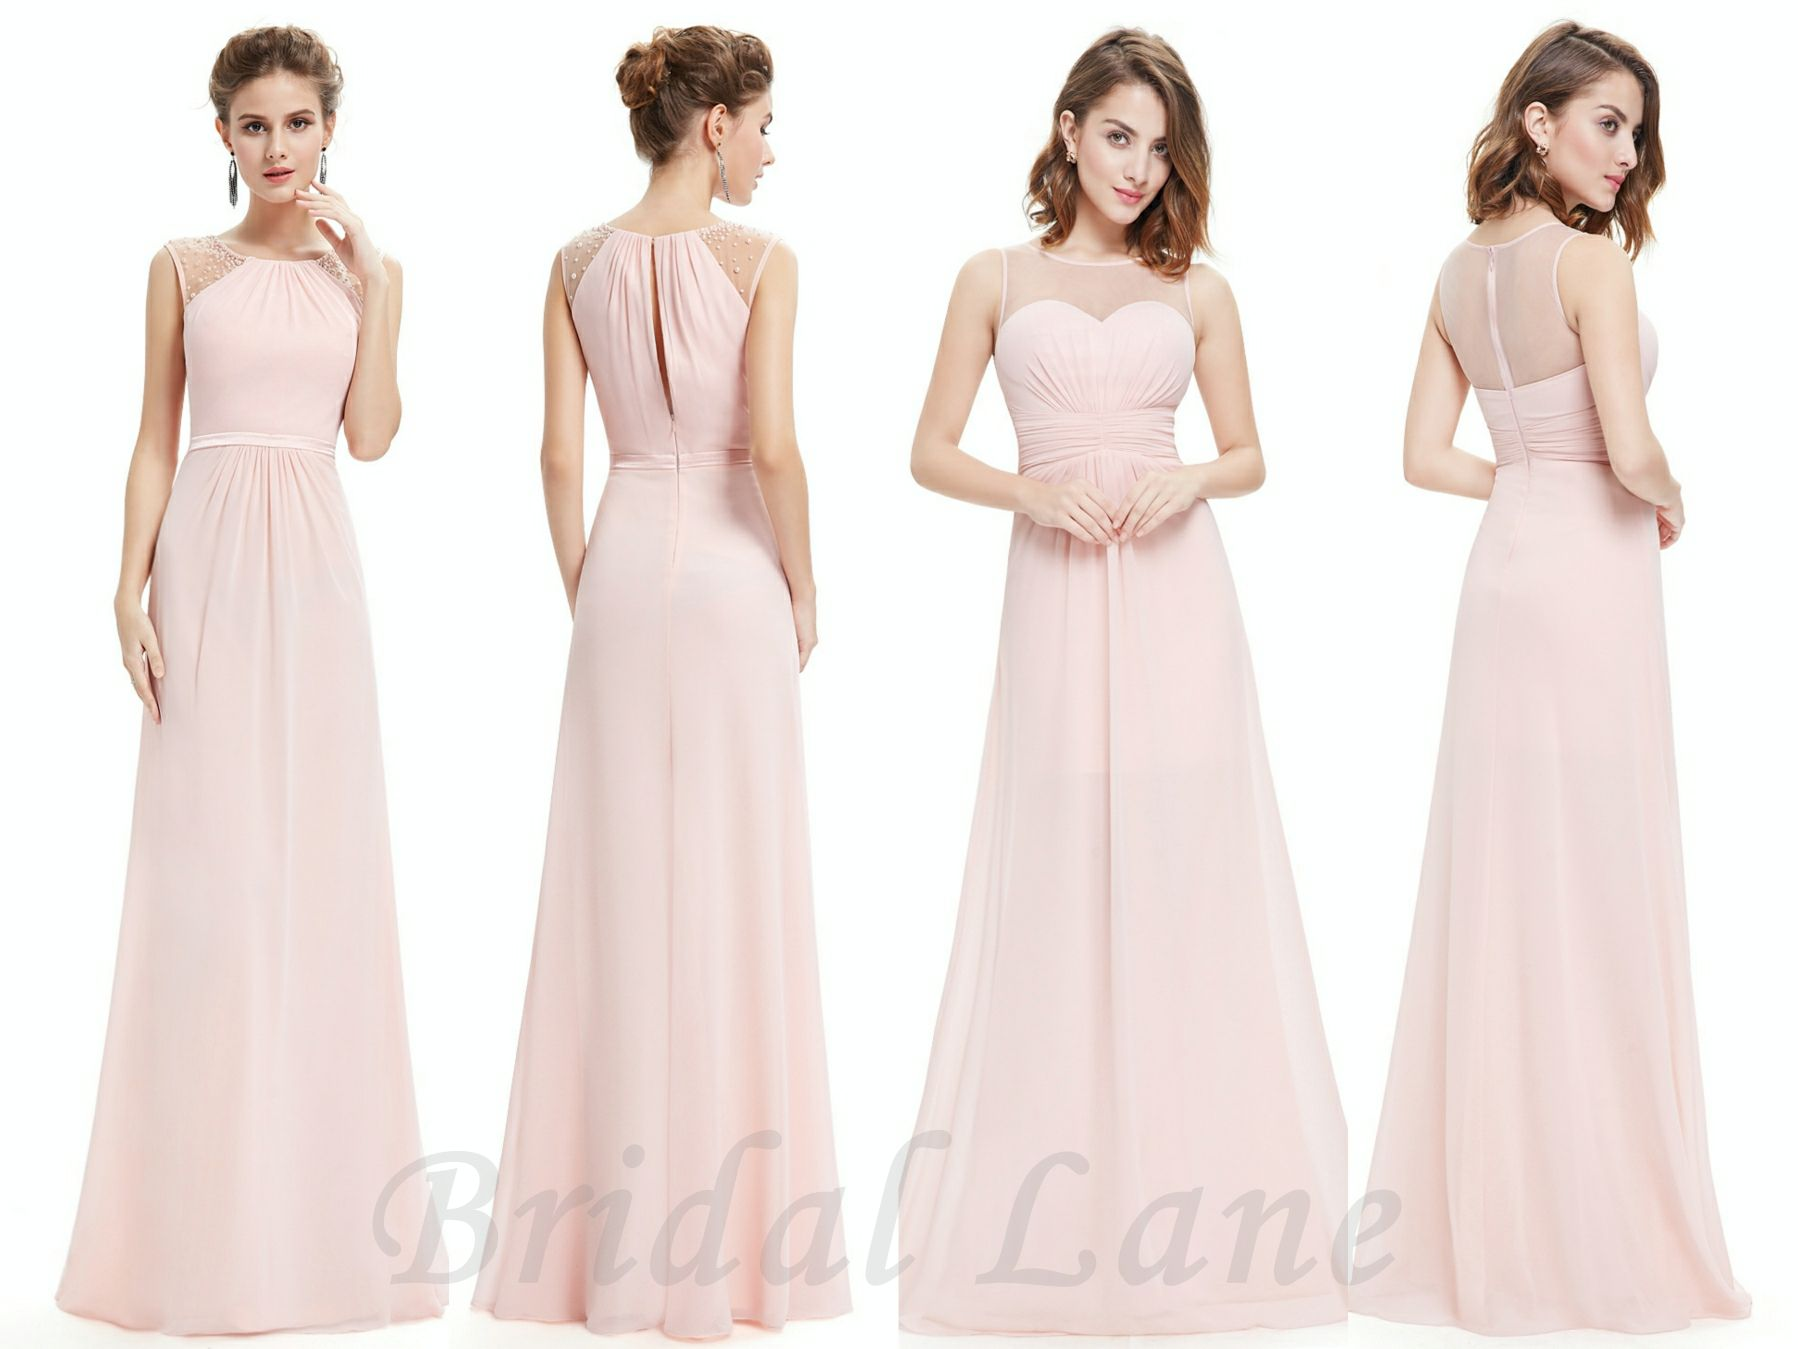 Blush pink bridesmaid dresses cape town bridesmaid dresses blush pink bridesmaid dresses cape town ombrellifo Images